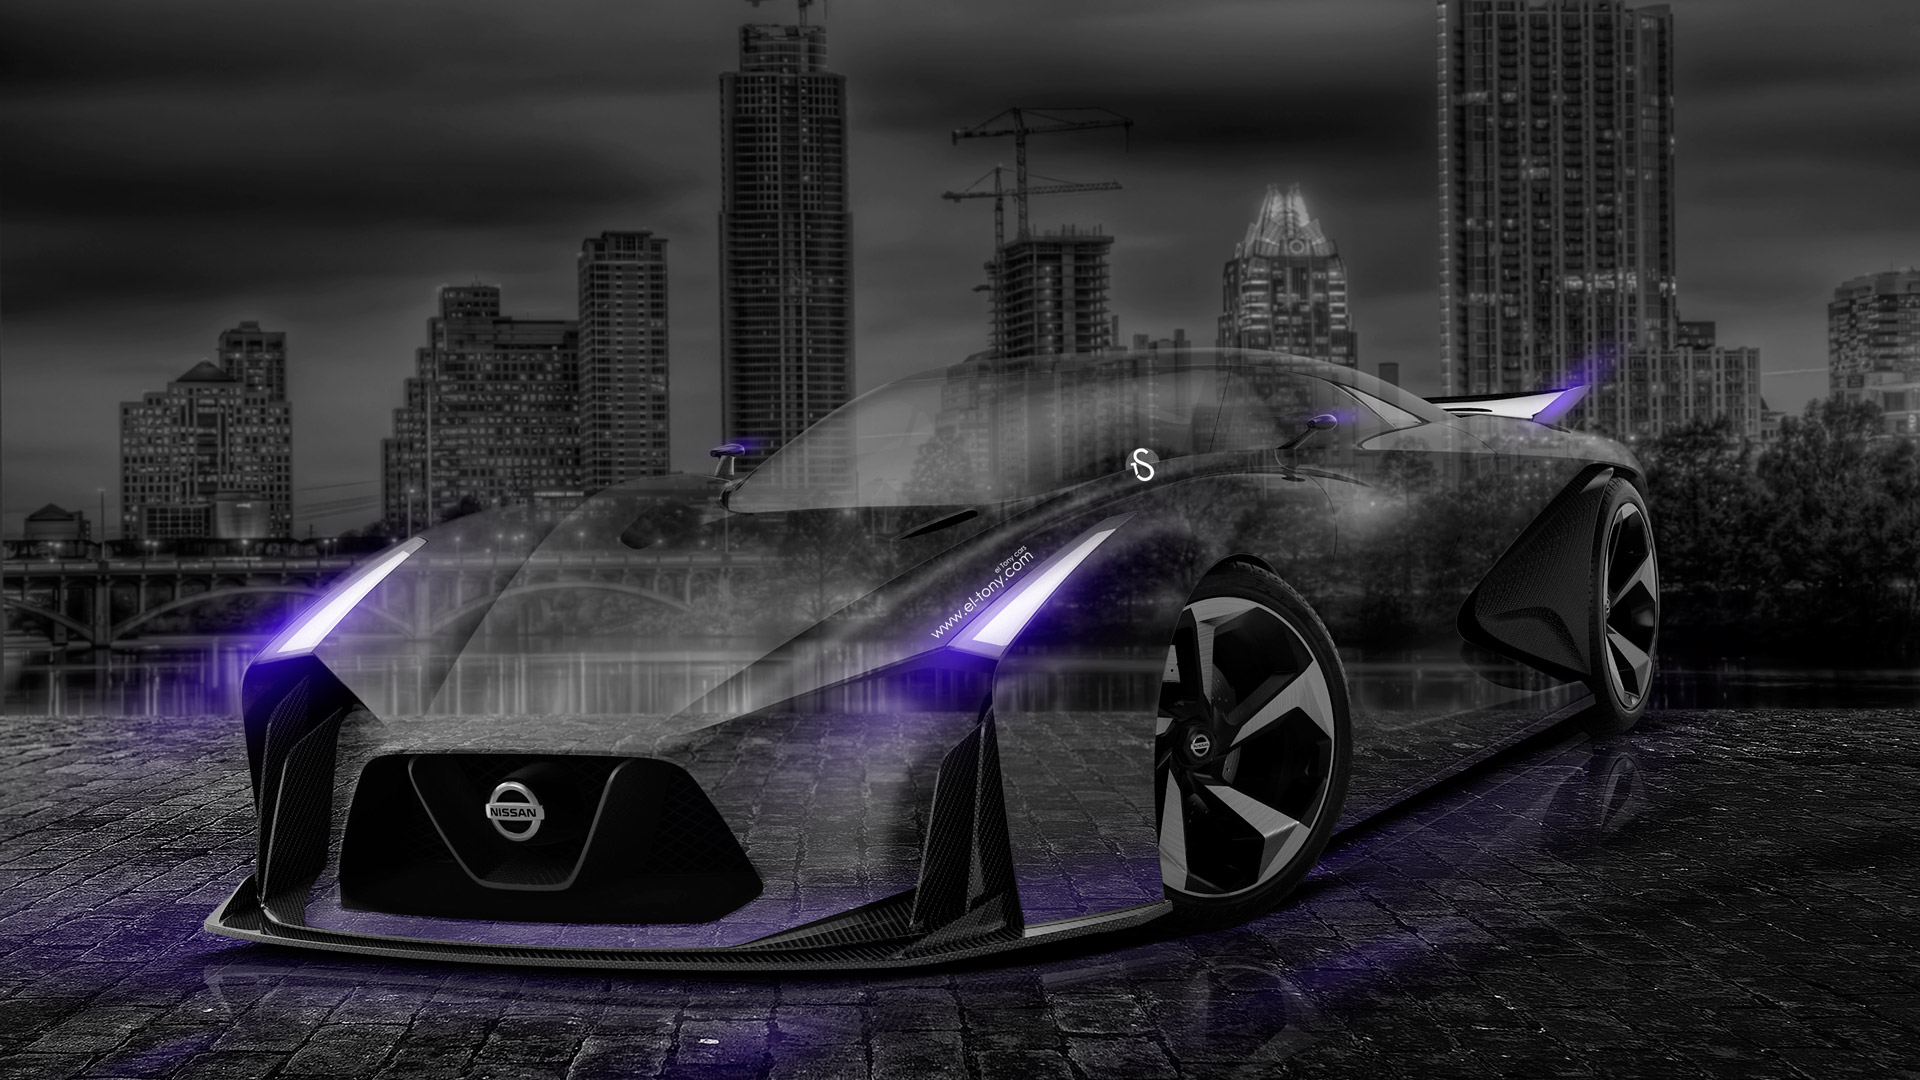 1920x1080 - Nissan Concept Wallpapers 22